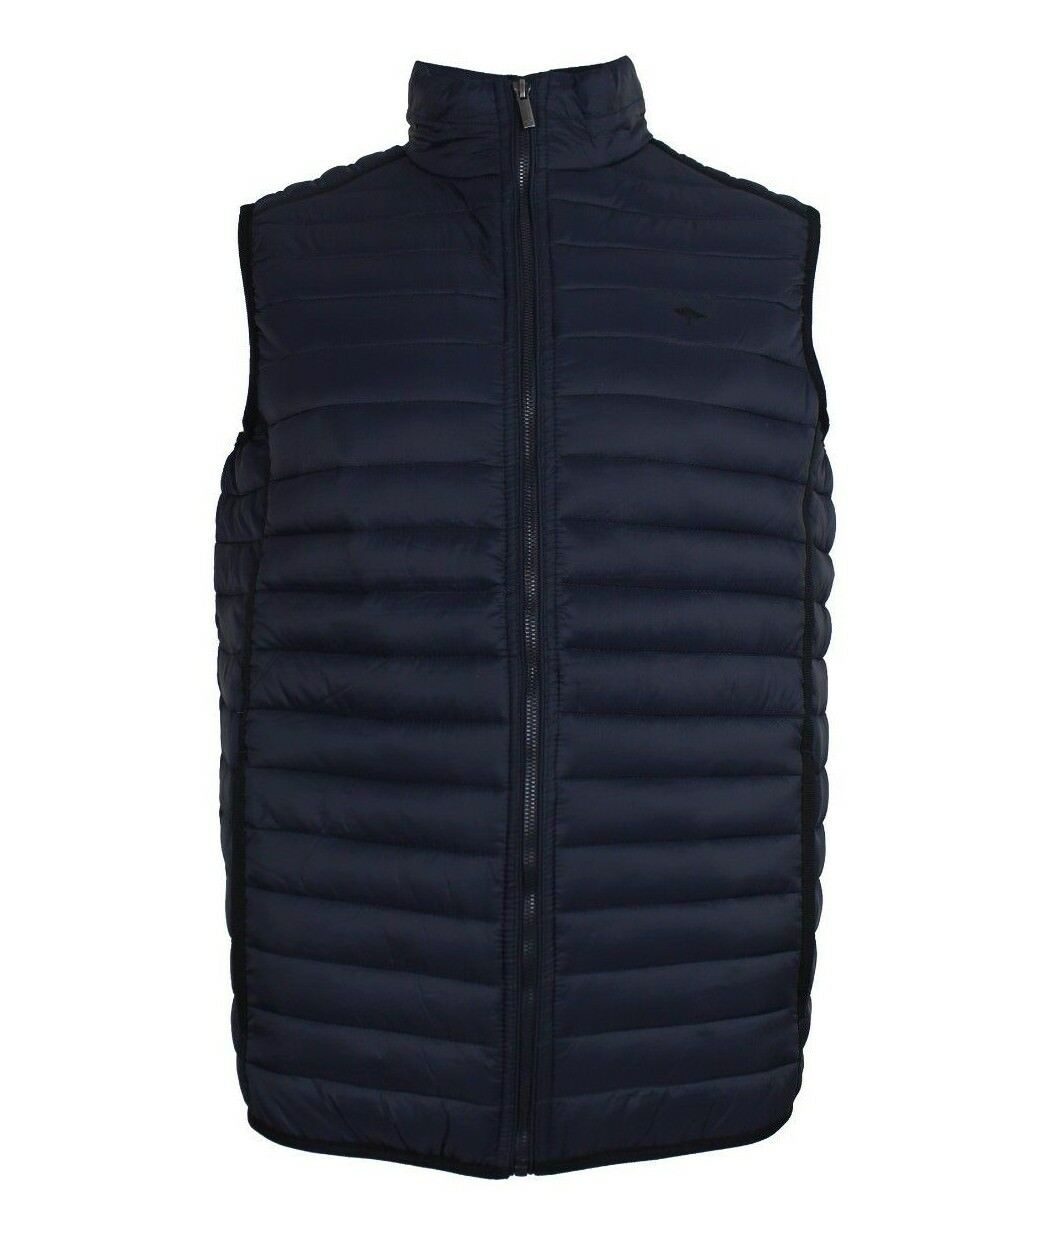 FYNCH-HATTON Herren Outdoor Steppweste - Padded Vest - Navy Gr. XL